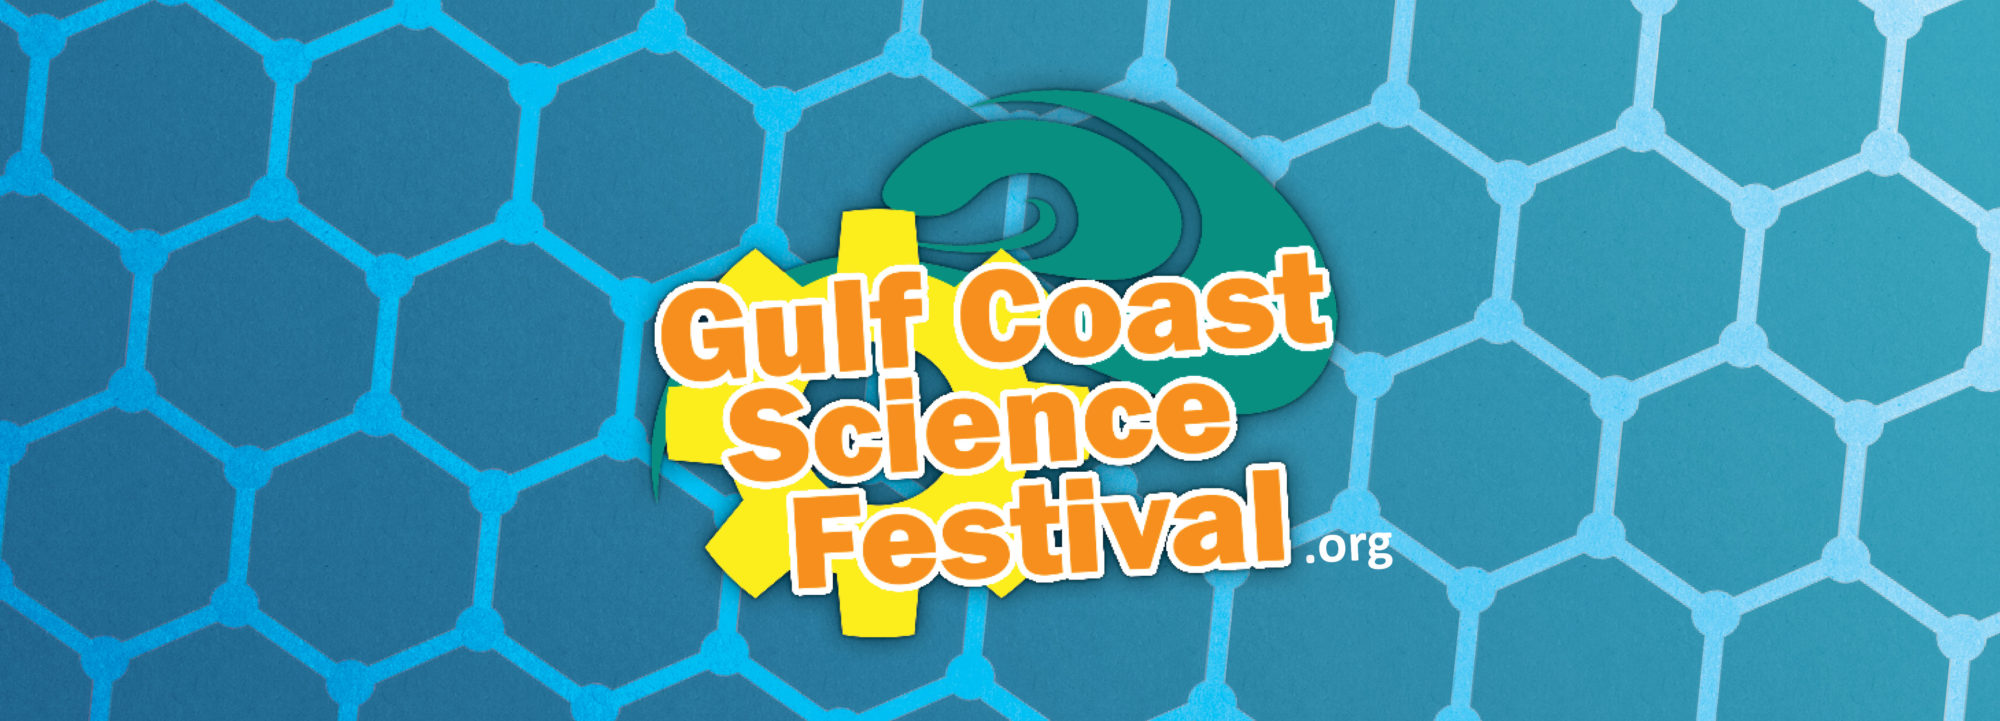 Gulf Coast Science Festival